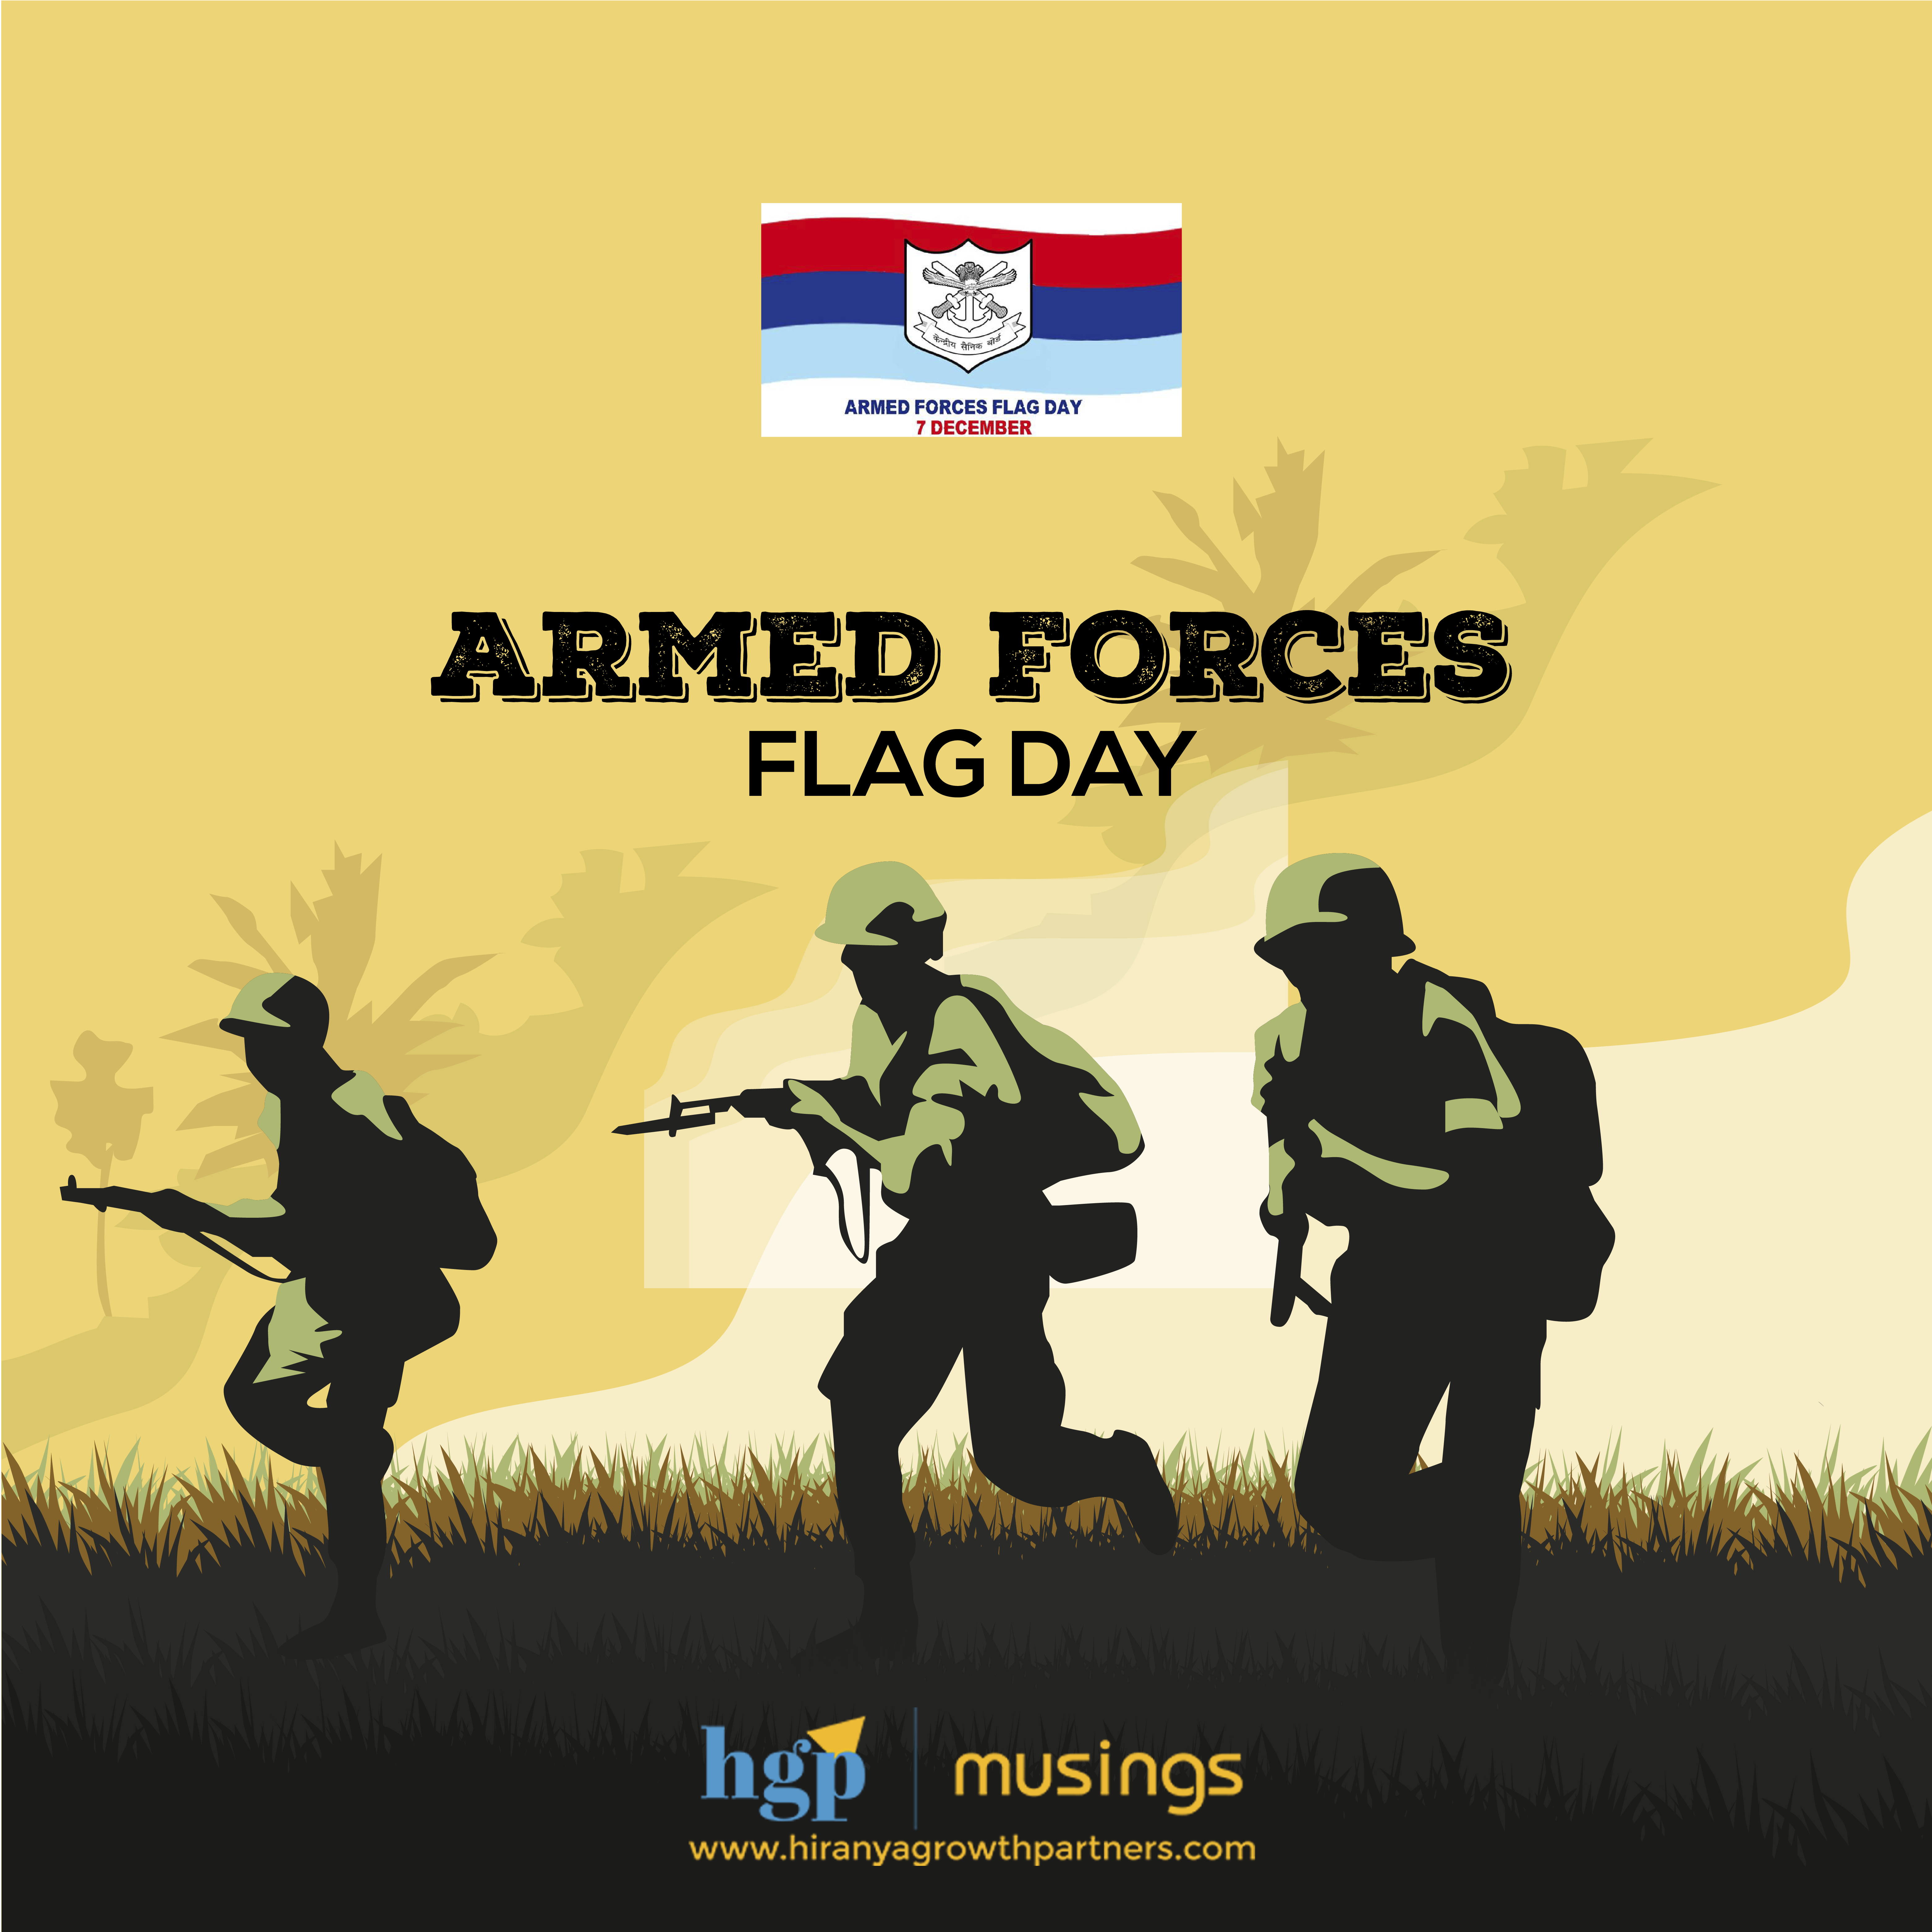 Armed Forces Flag Day A Day To Salute Our Brave Soldiers Who Protect Us And Also To Contribute To The Welfare Armed Forces Flag Day India Facts Armed Forces